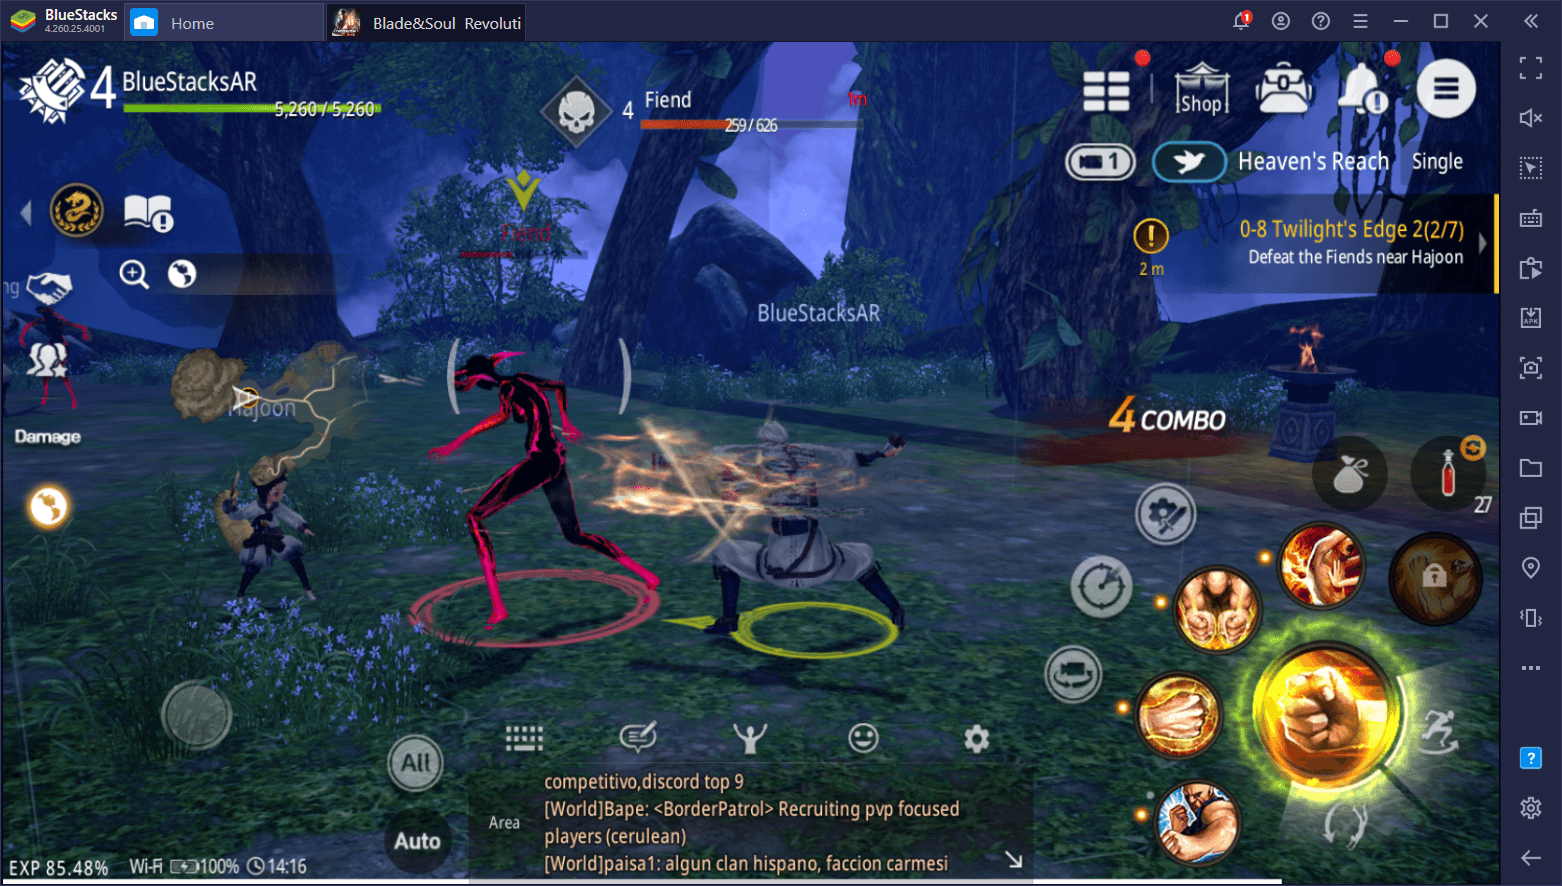 Blade & Soul Revolution on PC – How to Get the Most Out of Your Game When Playing on BlueStacks